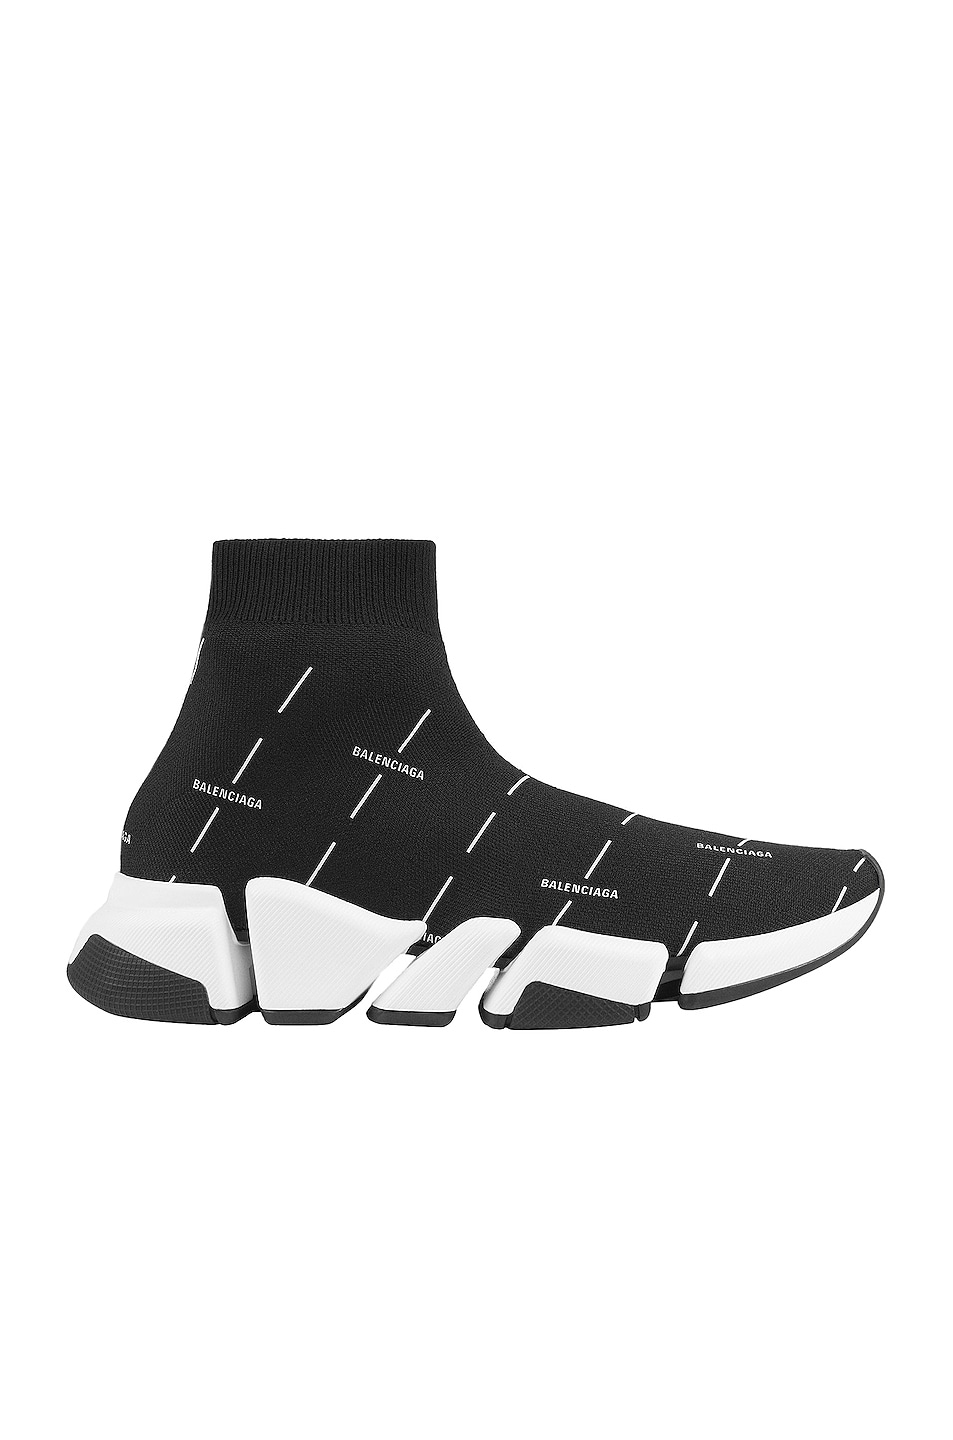 Image 1 of Balenciaga 2.0 Speed Sneakers in Black & White